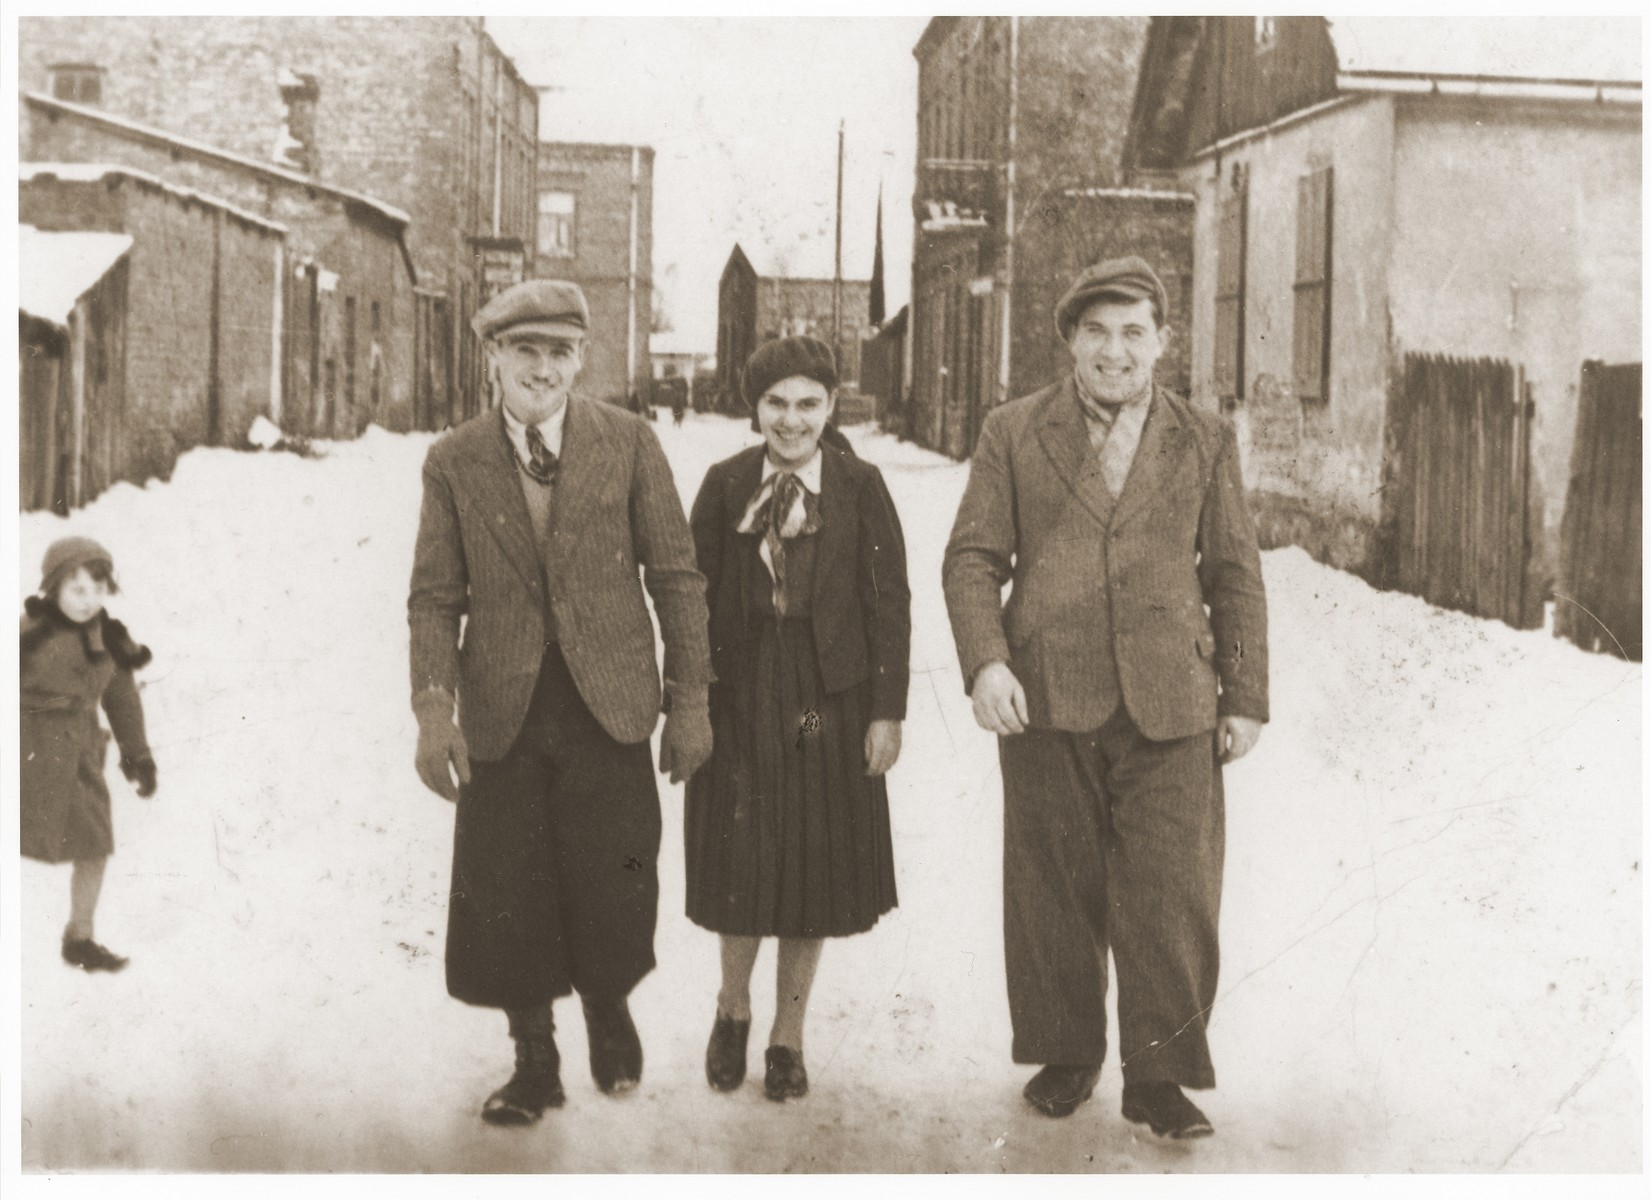 Mendel-Ajzik, Cesia and Abram-Zelig Kleiner walk down a snow covered street in Lazy, Poland.